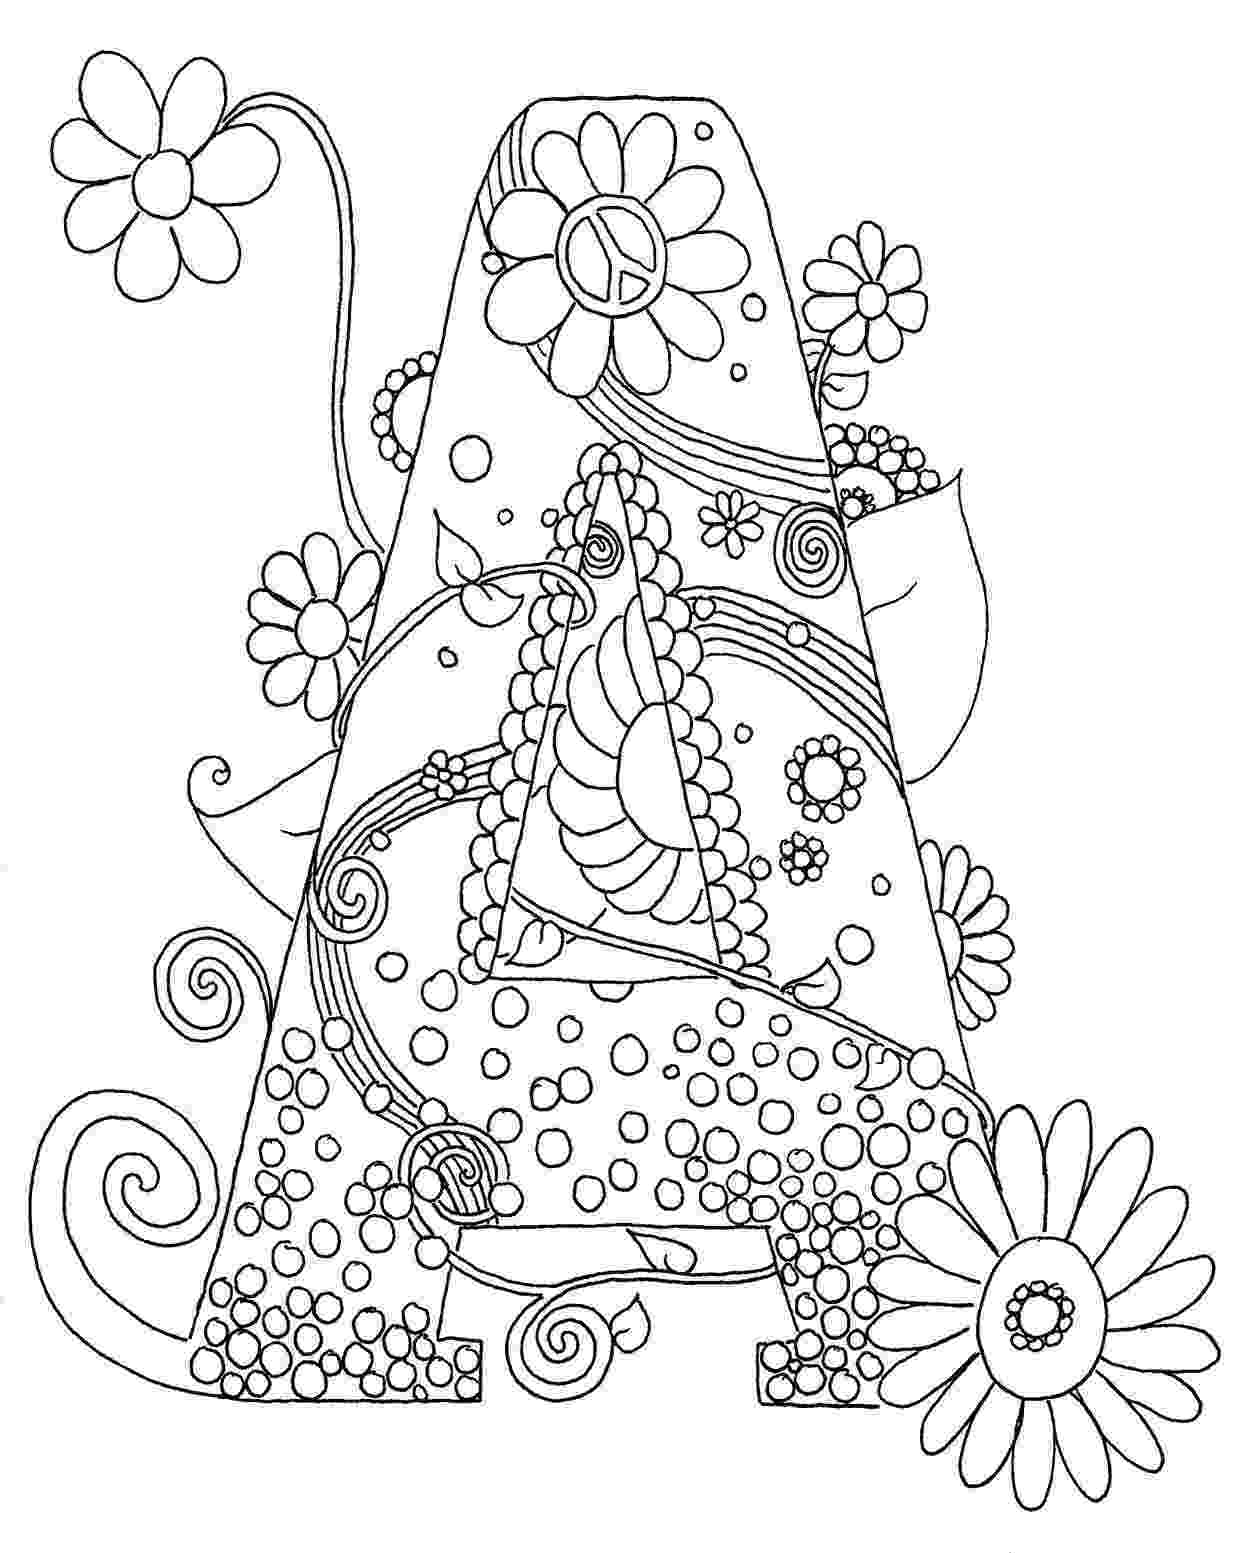 hippie coloring sheets free coloring pages for adults 8 funky pictures from sheets coloring hippie 1 1